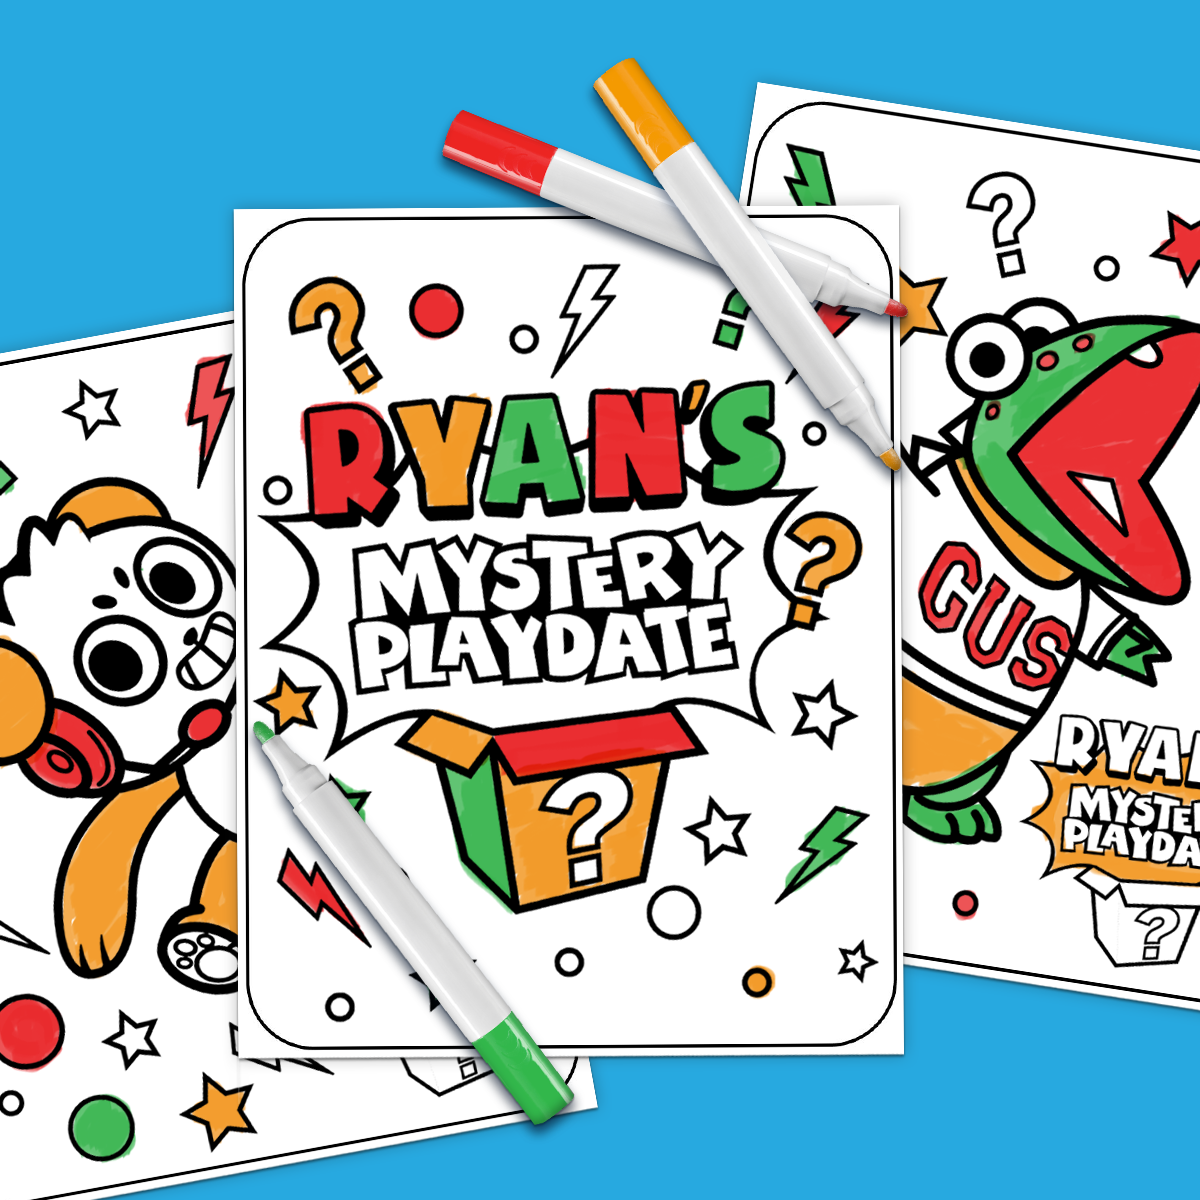 Ryan S Mystery Playdate 3 Marker Challenge Ryan Toys Playdate Nick Jr Coloring Pages